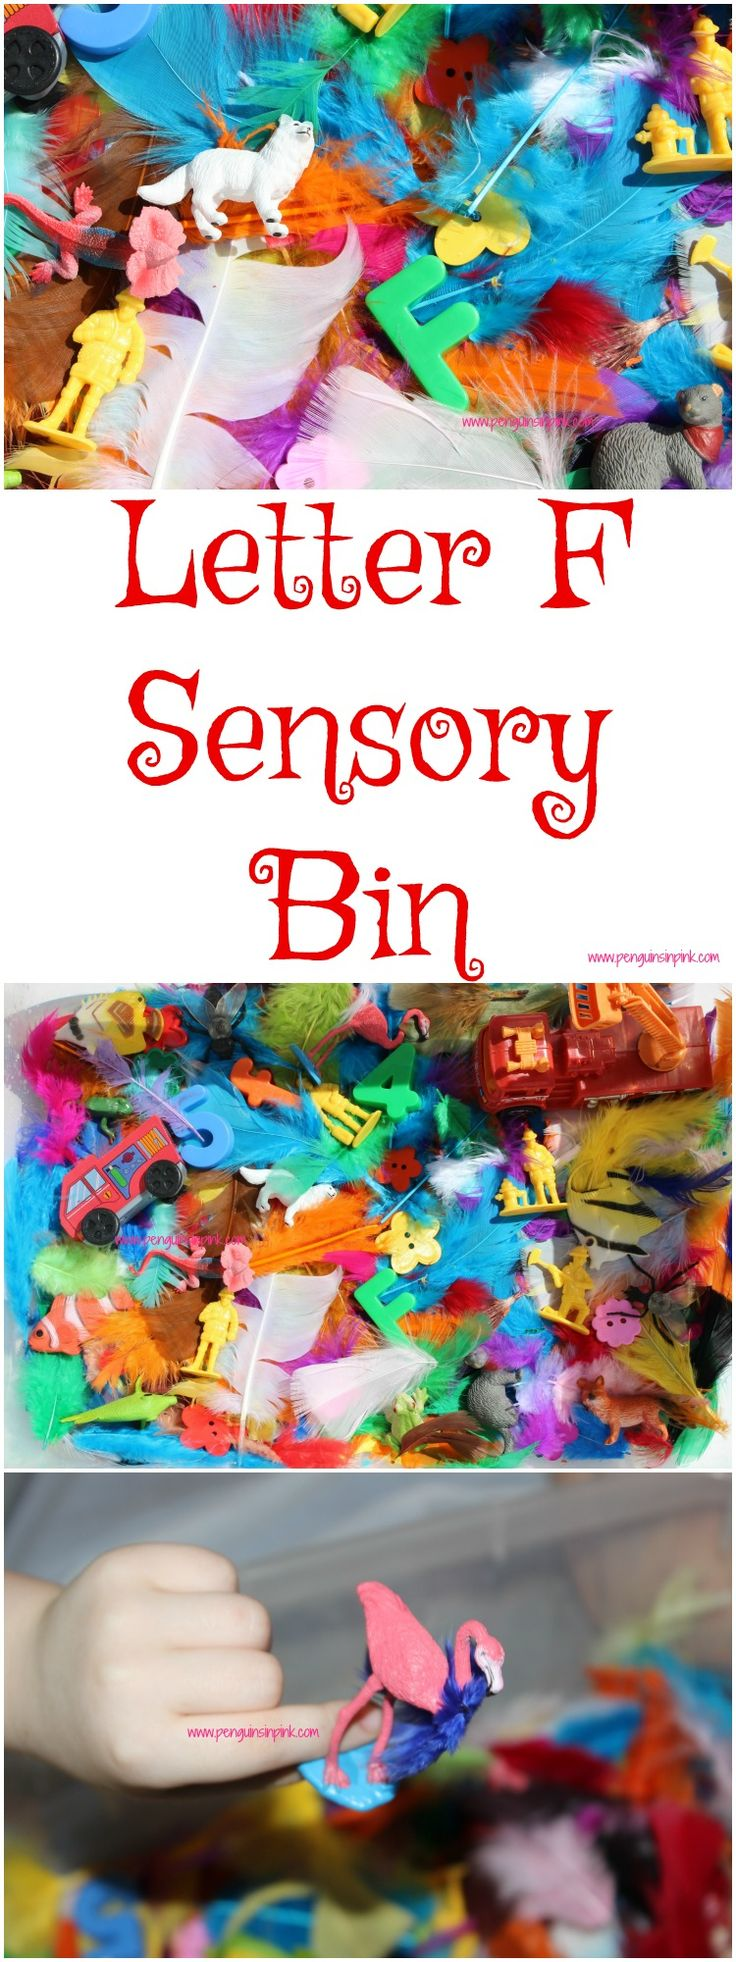 "Letter F Sensory Bin - This sensory bin has it all feathers, firetrucks, firemen, fish, and other items beginning with letter ""F""."